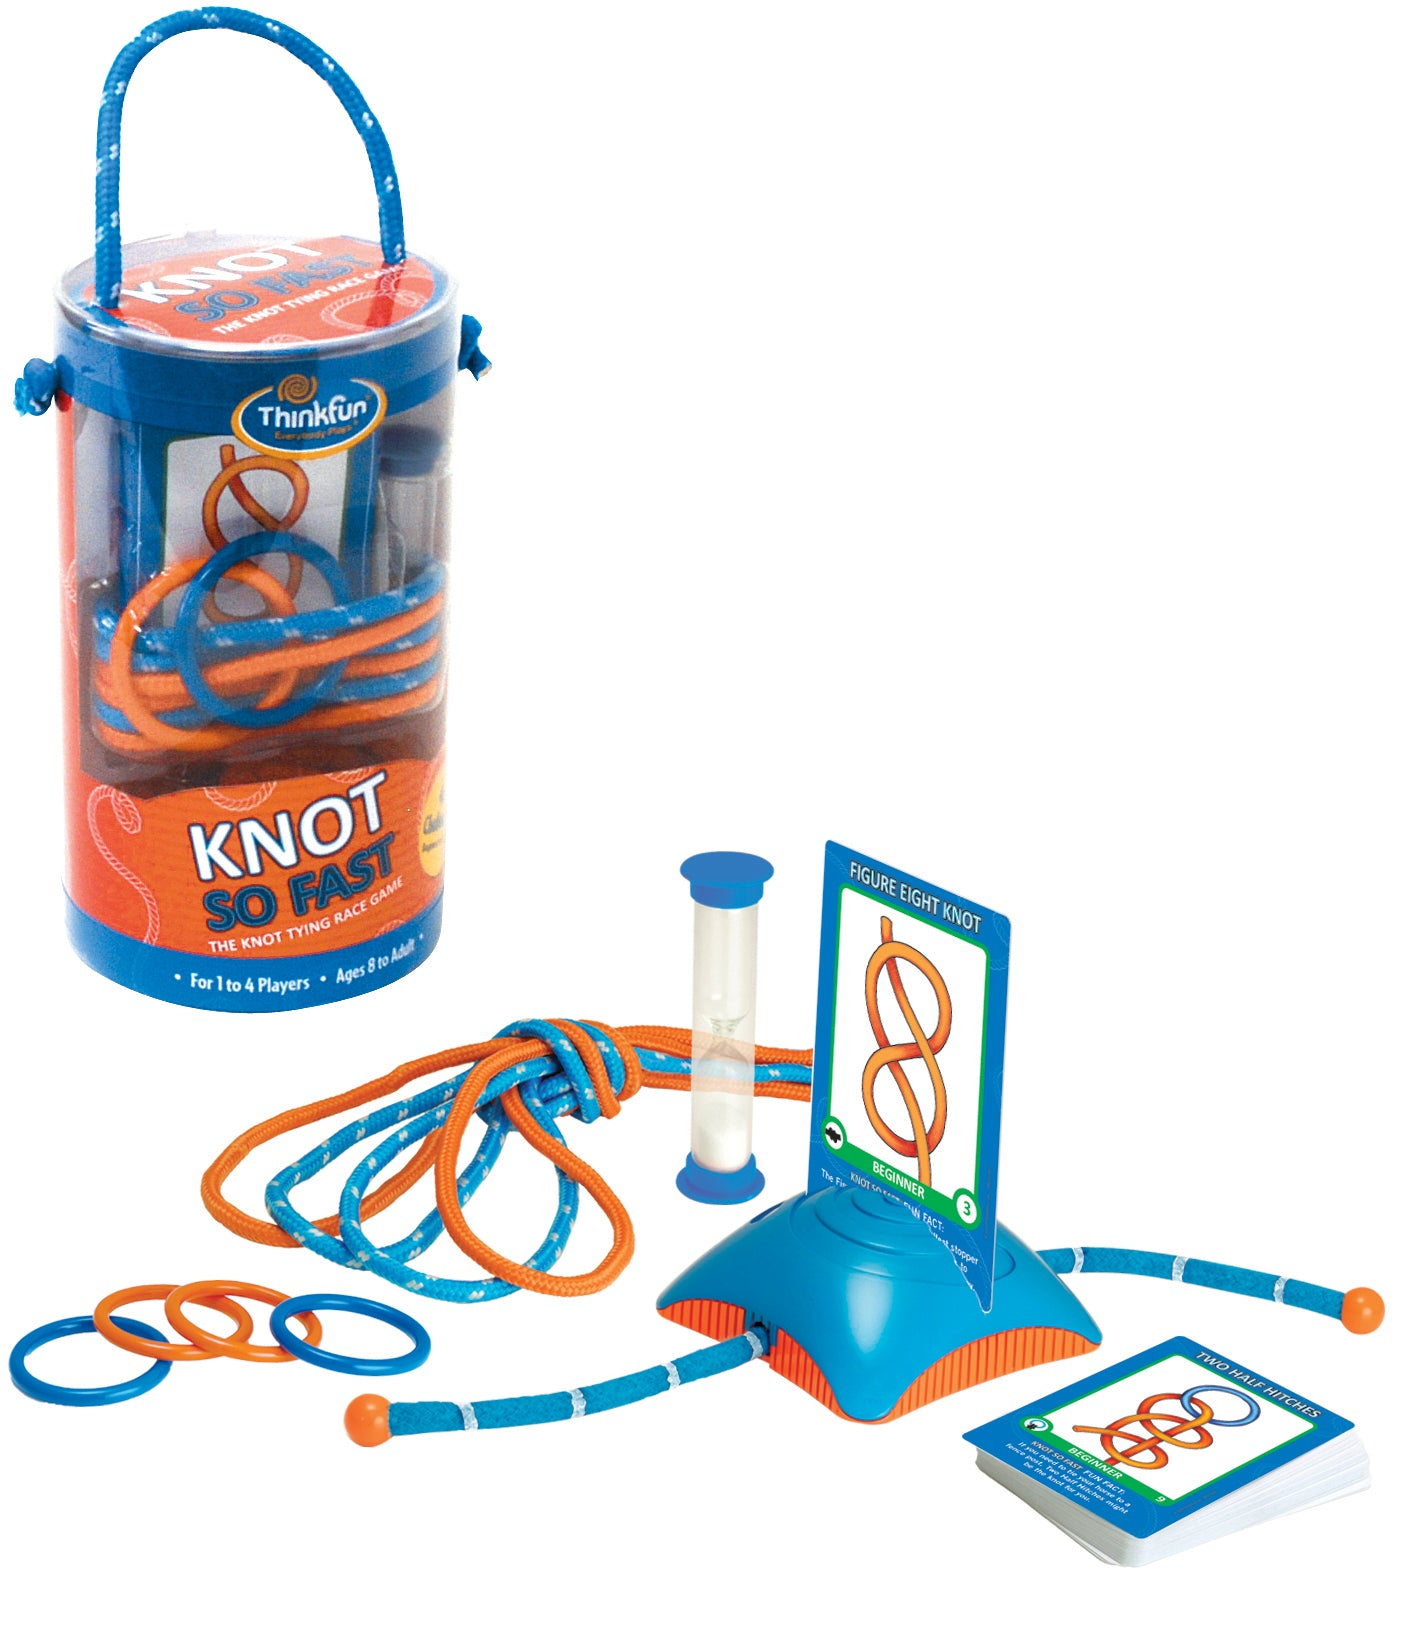 Knot So Fast by Thinkfun